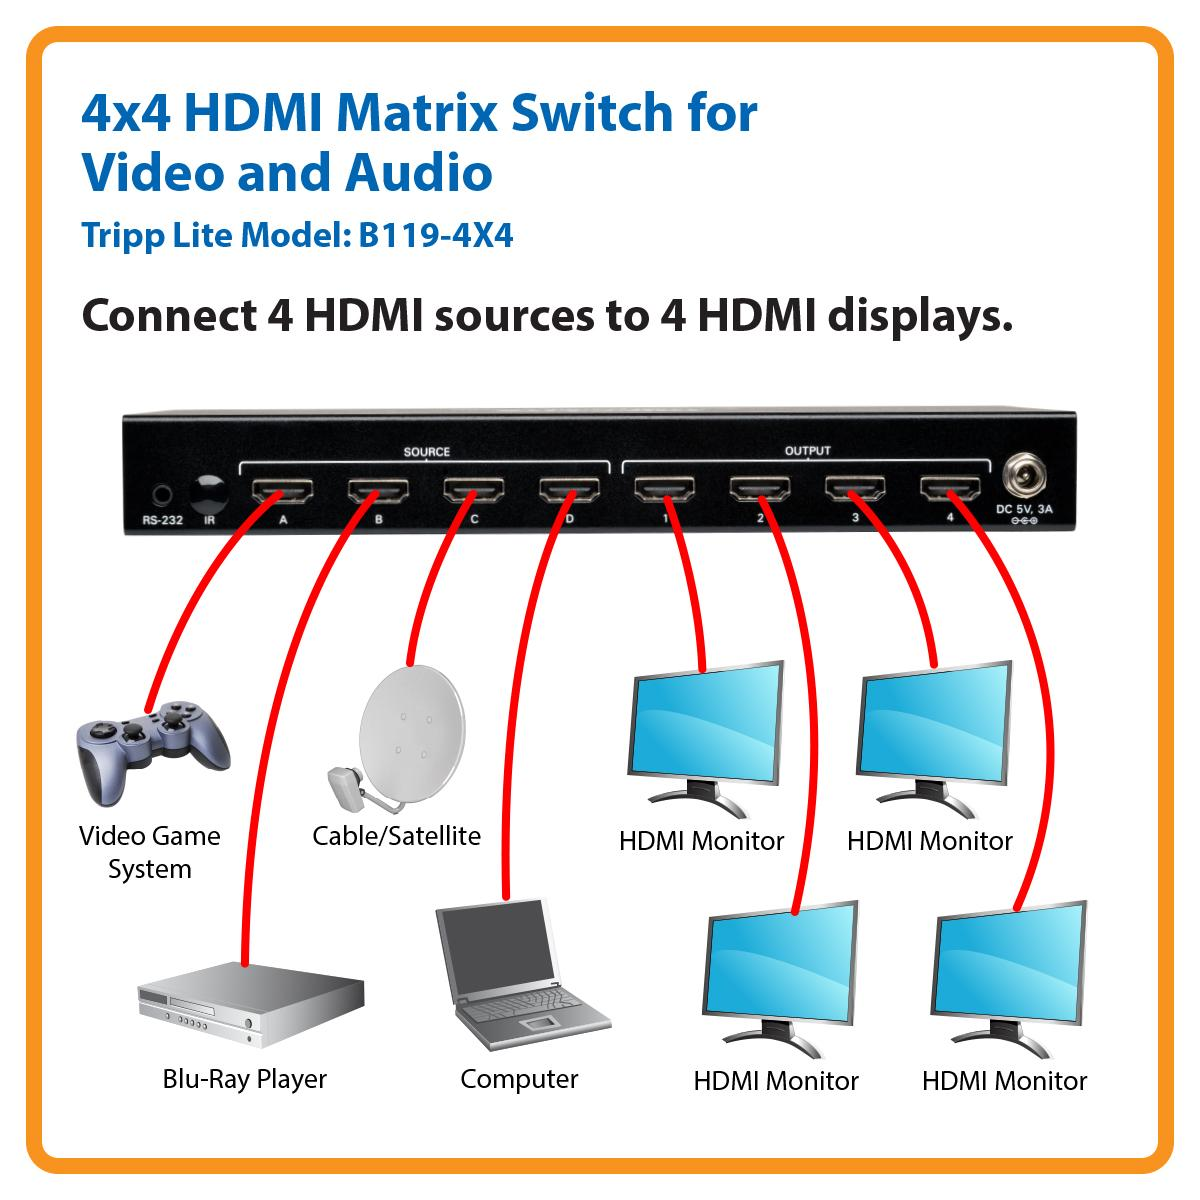 Tripp Lite 4x4 Hdmi Matrix Switch For Video And Audio Details About Cat5e Cat6 Auto Splitter Extender Share 4 Sources With Displays Using Cables Lites B119